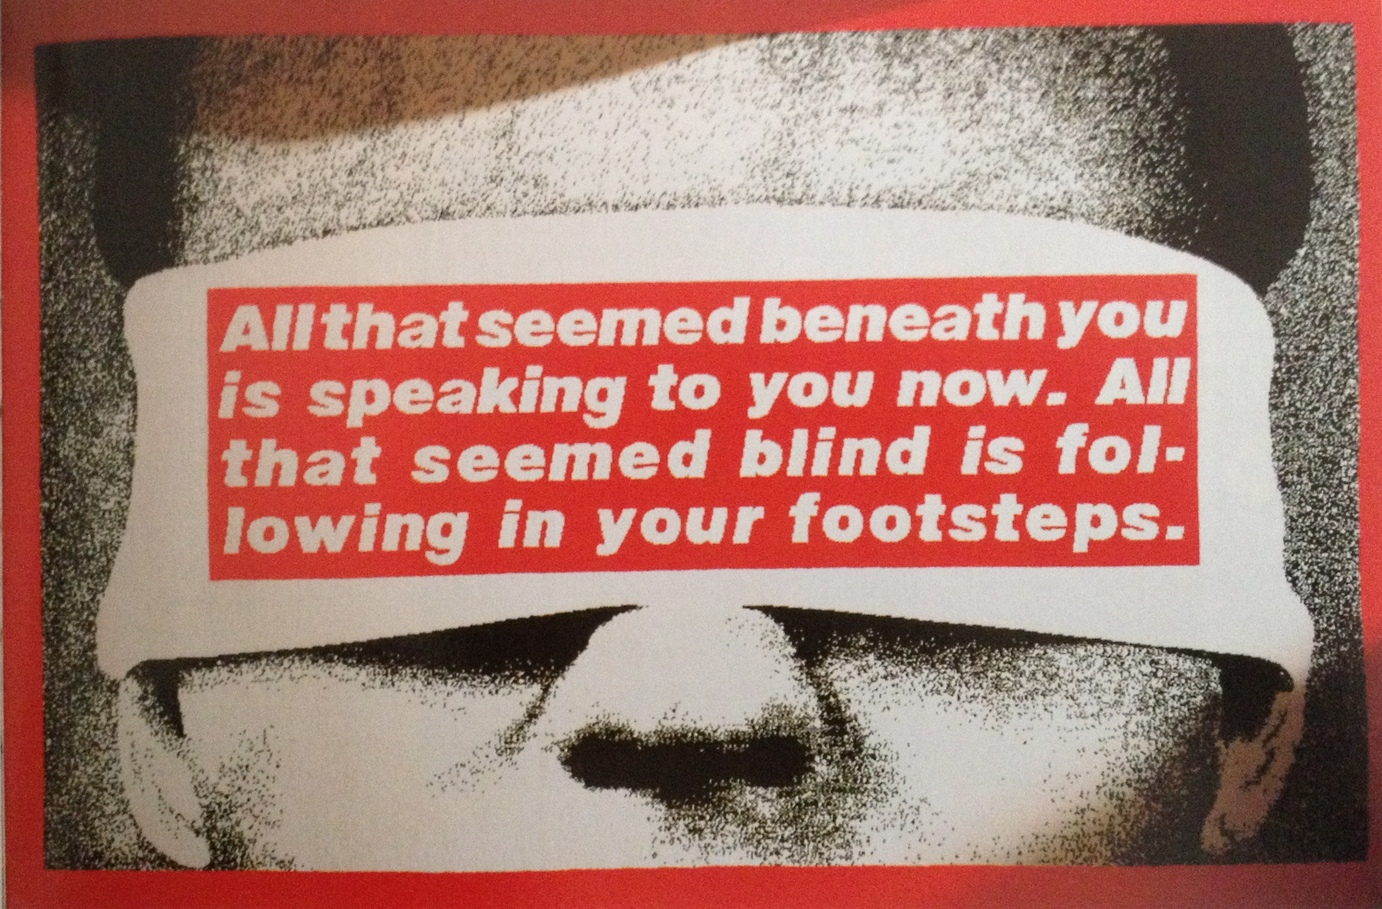 "Abb., S. 45: Barbara Kruger, Teppich aus der Dialog-Kollektion, Vorwerk 1992. | ""All that seemed beneath your is speaking to you now. All that seemed blind is following in your footsteps."""